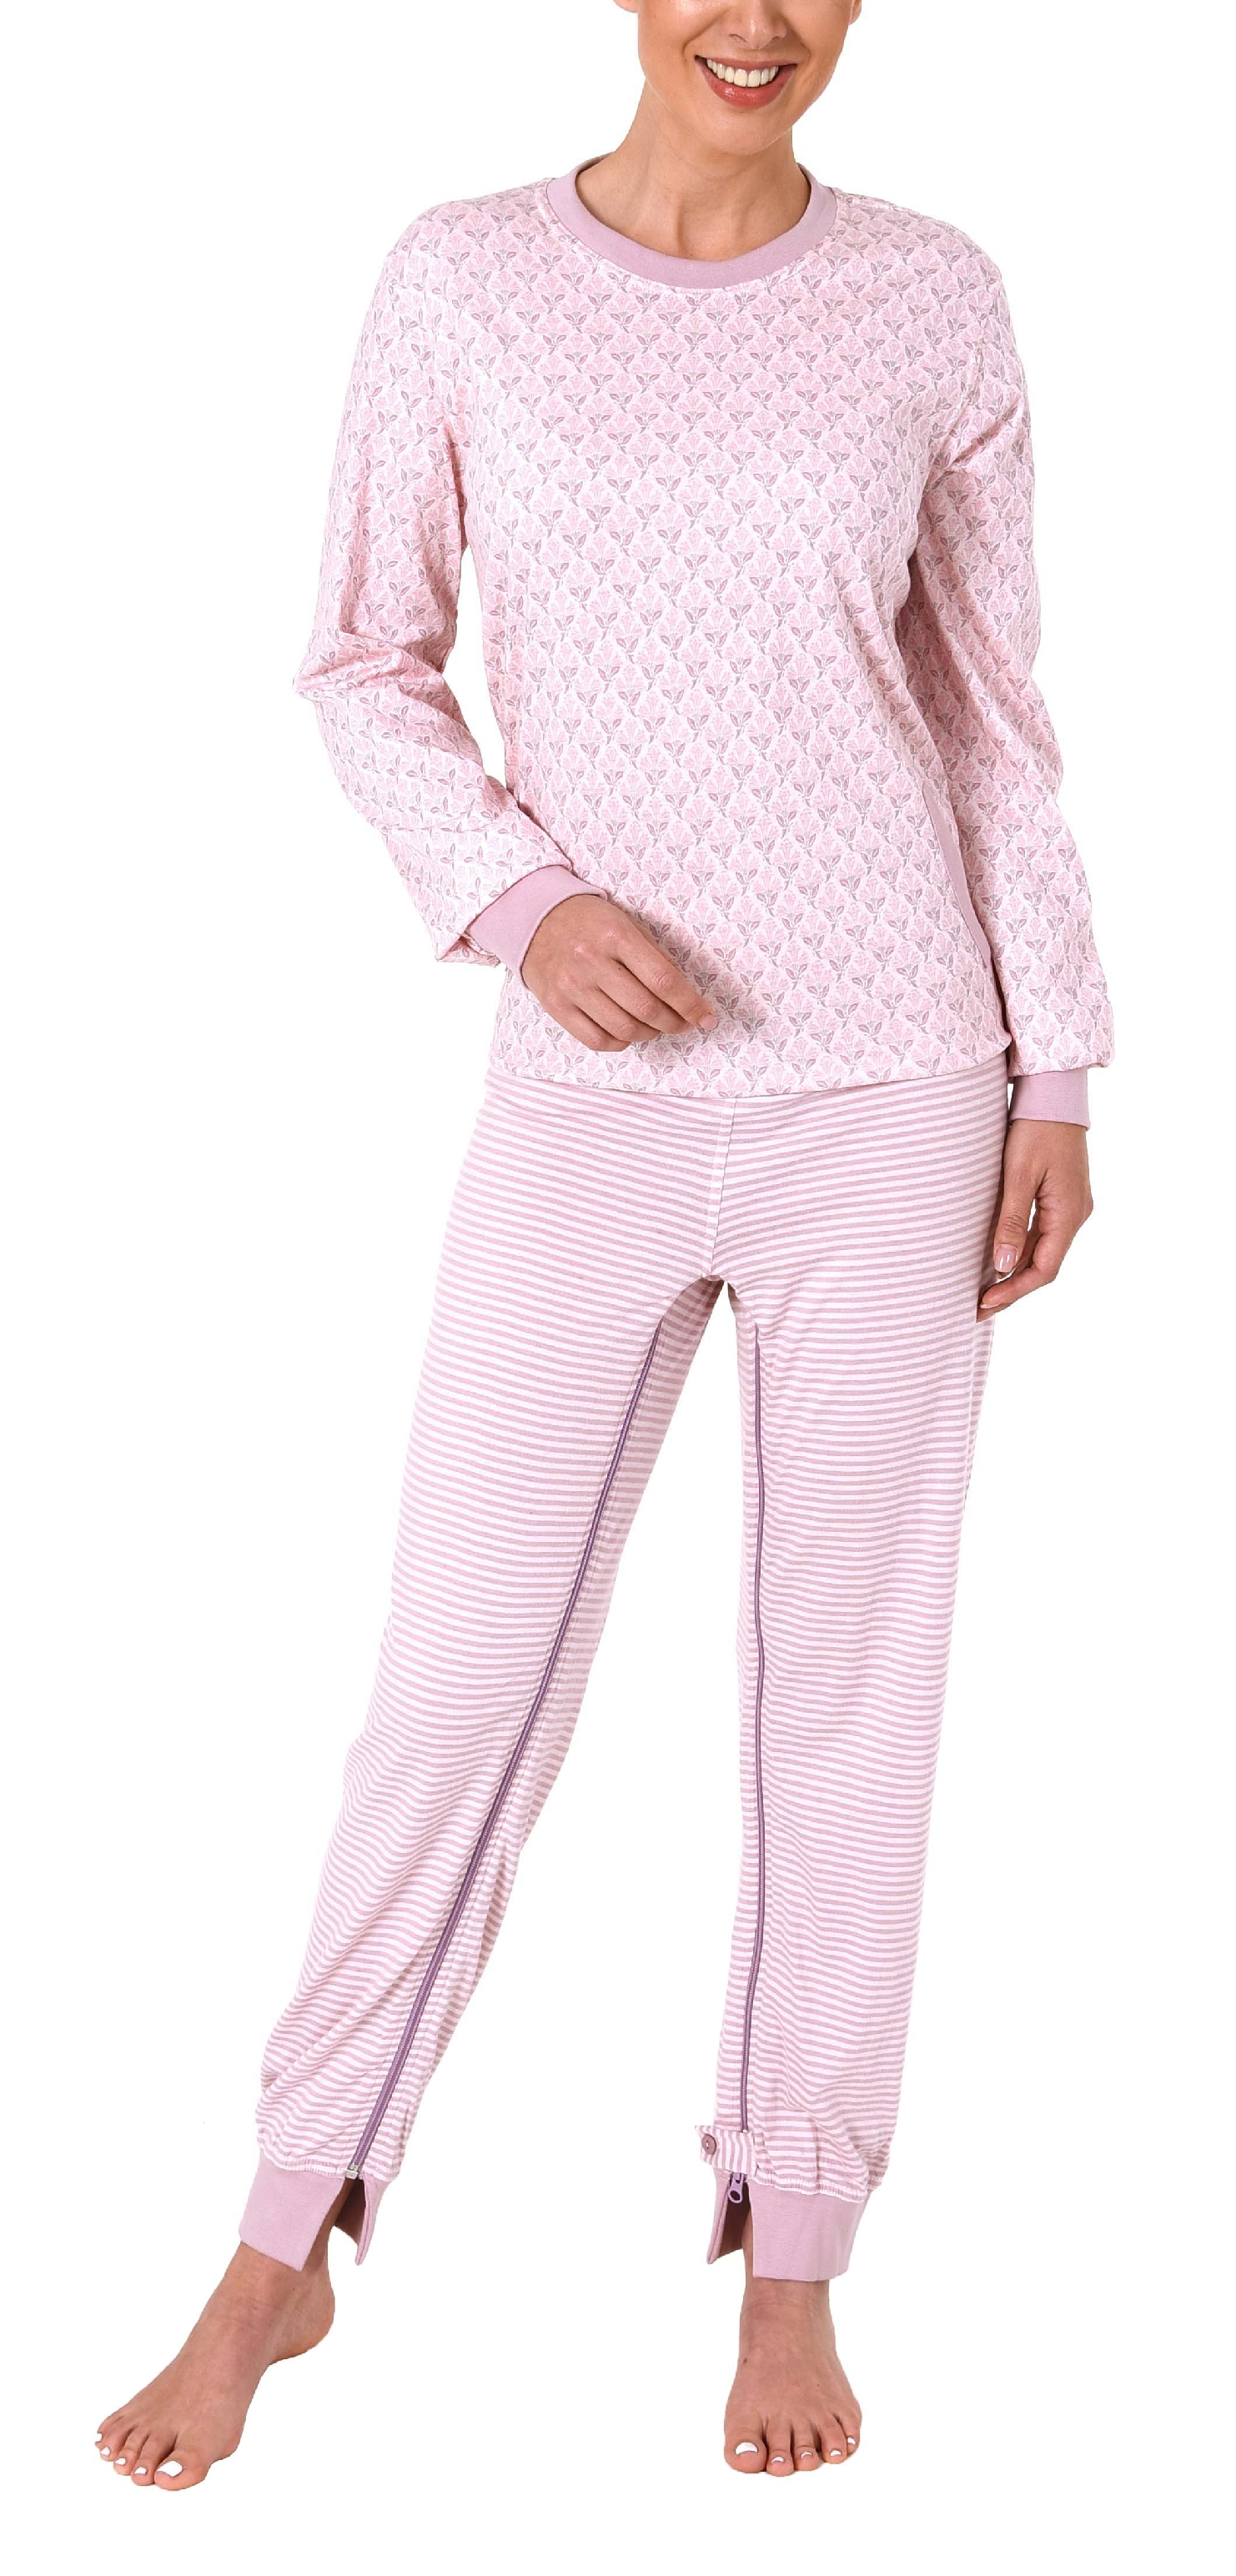 Womens Care Alzheimers Clothing Nursing Jumpsuit Pajama with Zipper at Back and Leg